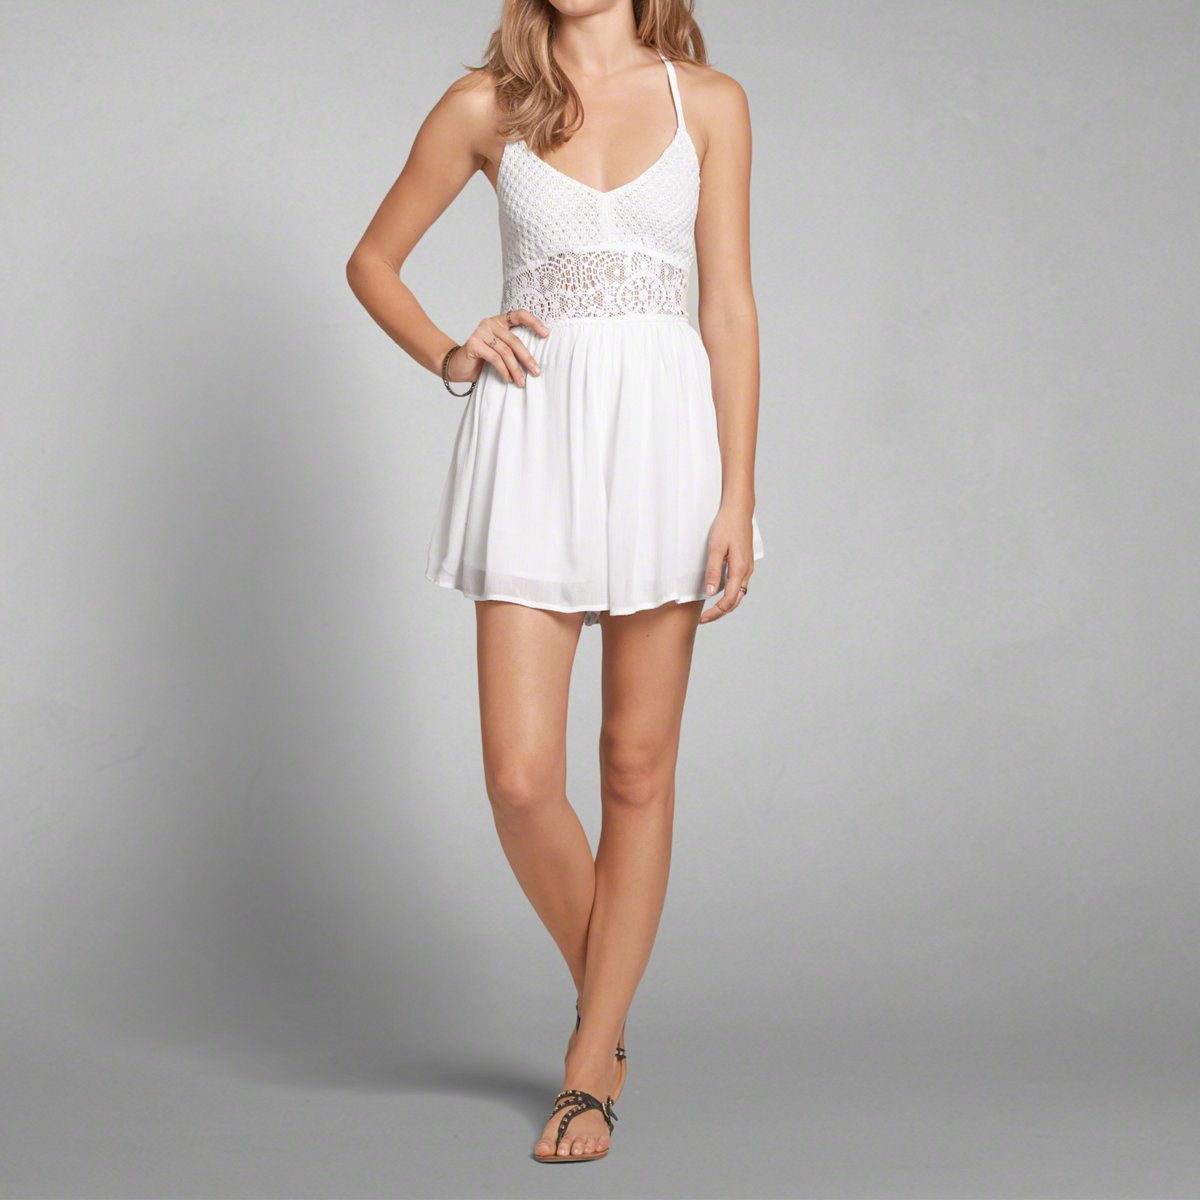 Abercrombie Accessories Abercrombie Accessories Abercrombie Womens Abercrombie Couple Abercrombie Womens: Womens Sheer Waist Romper